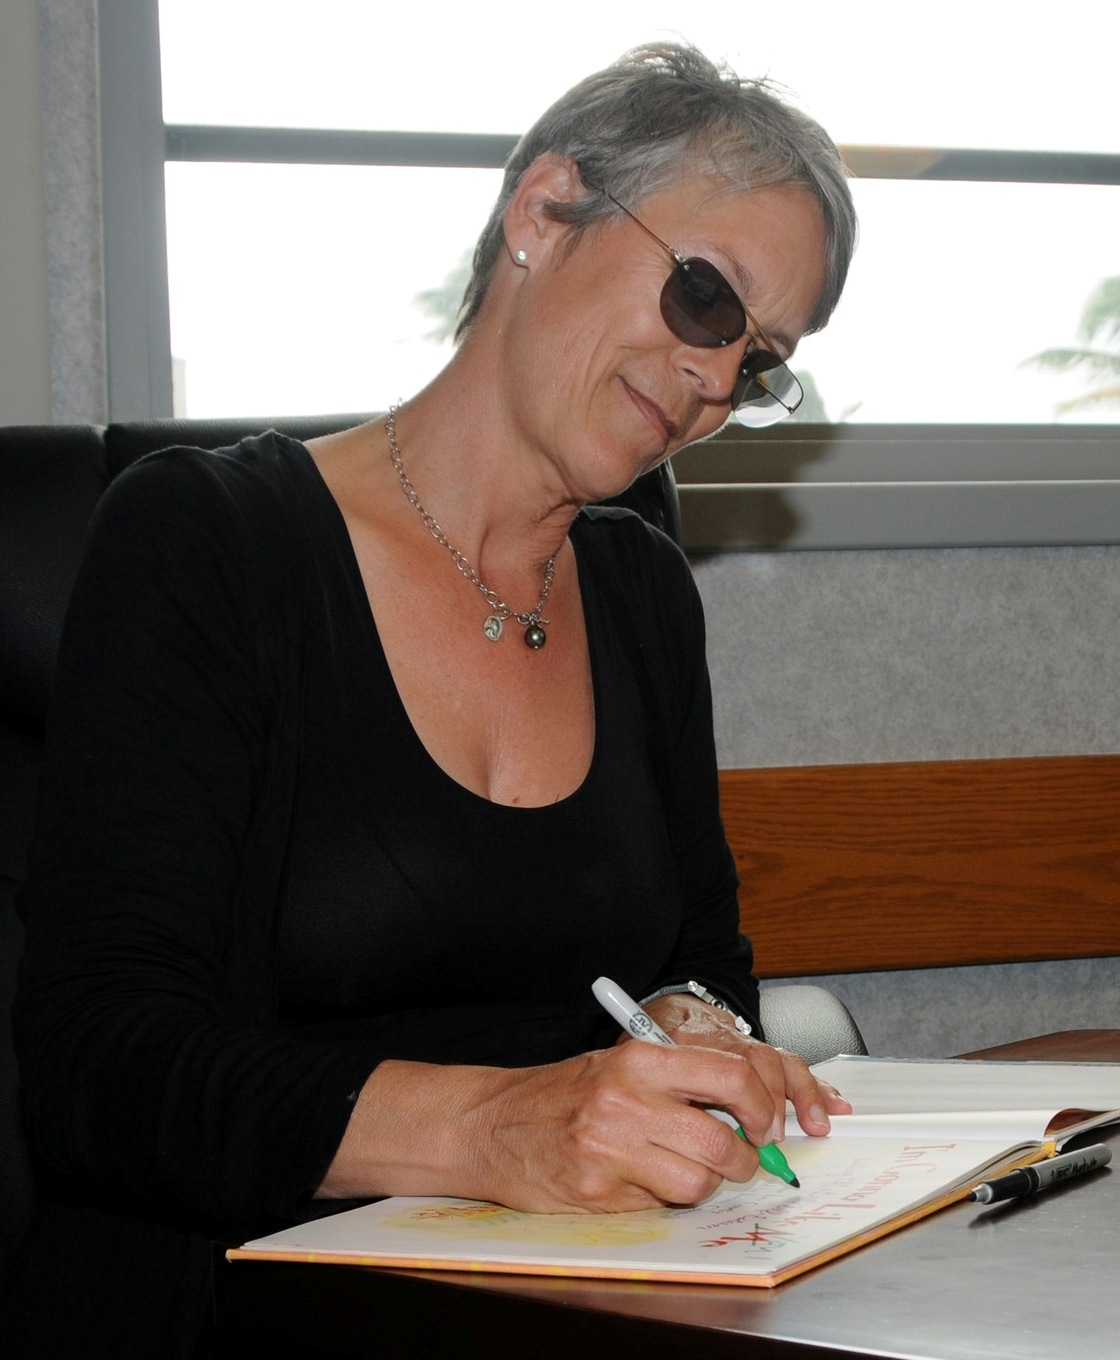 https://upload.wikimedia.org/wikipedia/commons/1/1b/Jamie_Lee_Curtis_in_2010.jpg